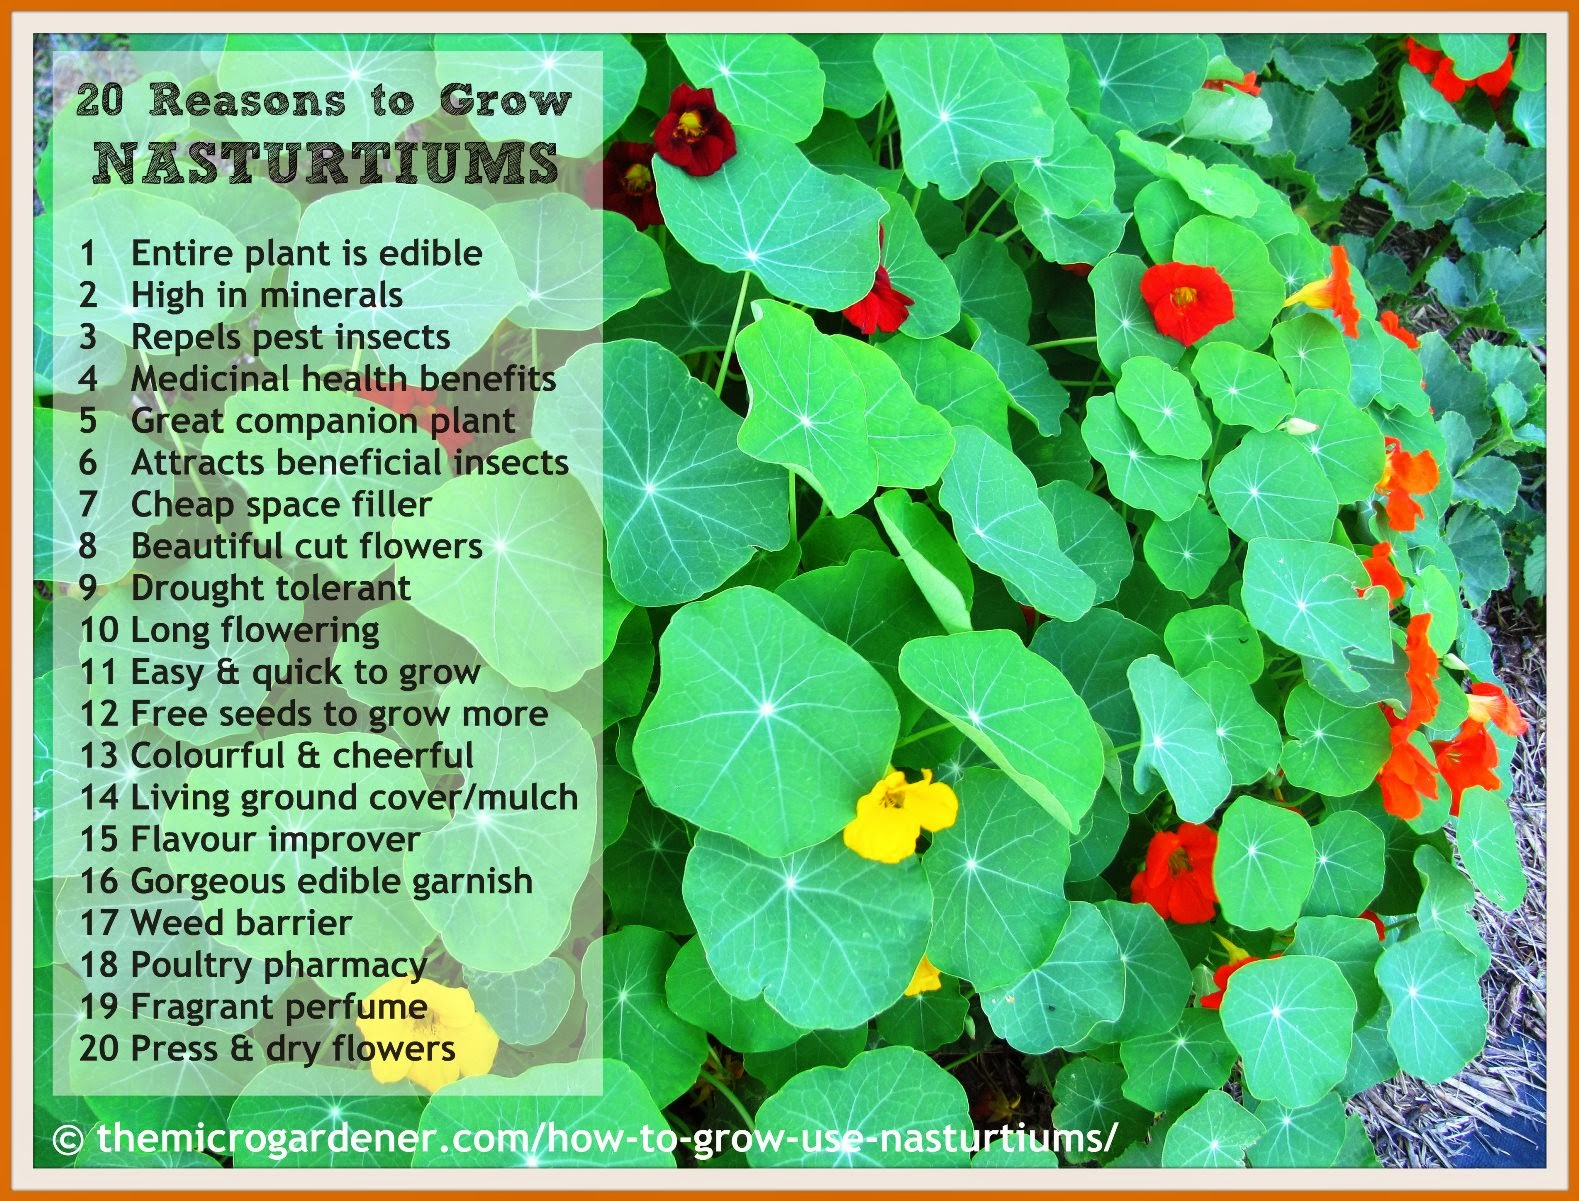 20 Reasons to Grow Nasturtiums | The Micro Gardener